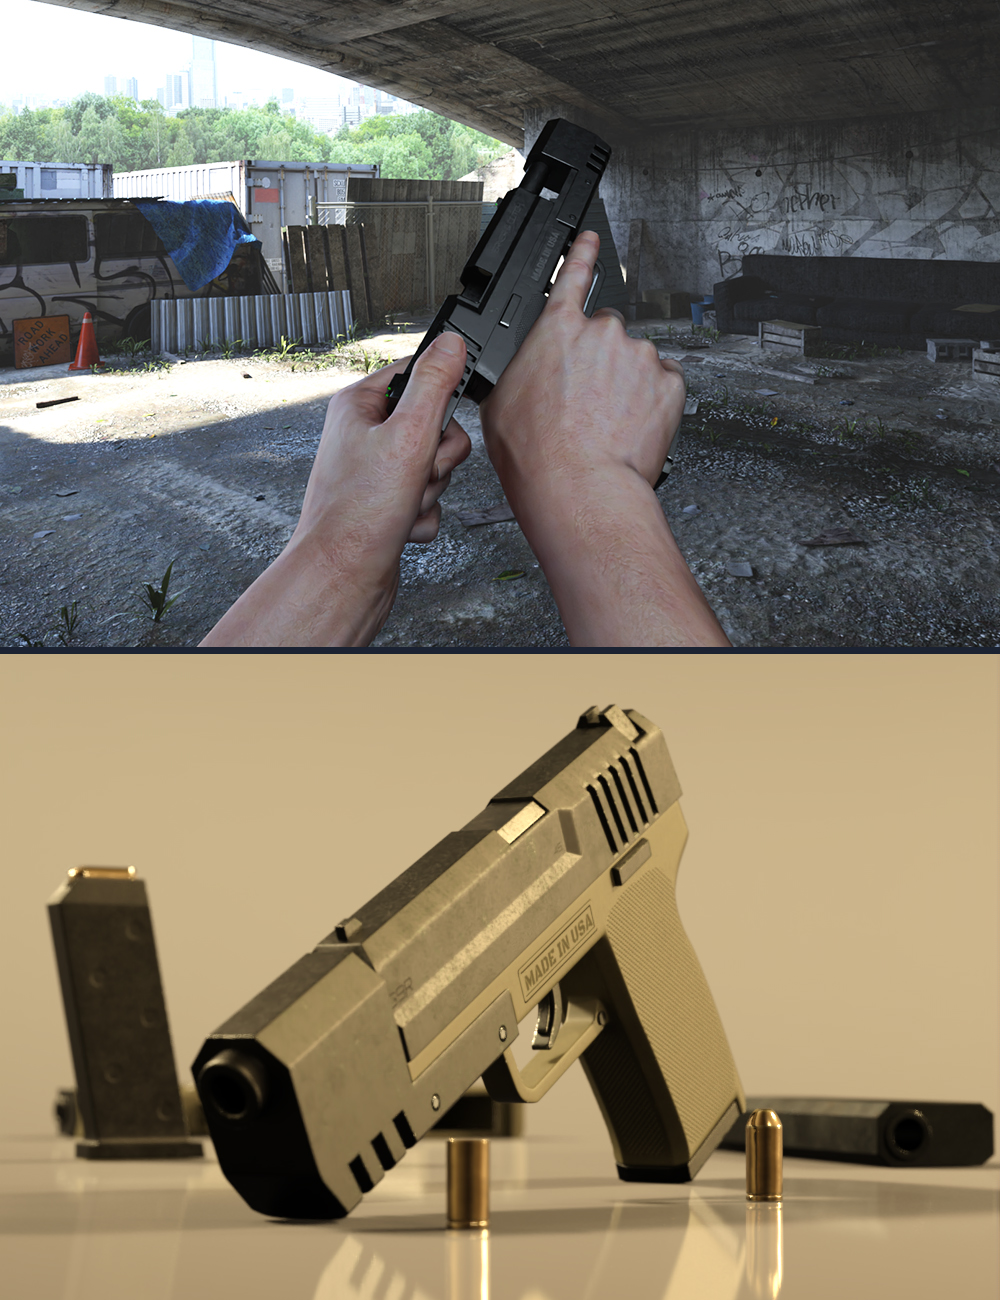 KACC G9R Pistol and Poses for Genesis 8 by: KindredArts, 3D Models by Daz 3D